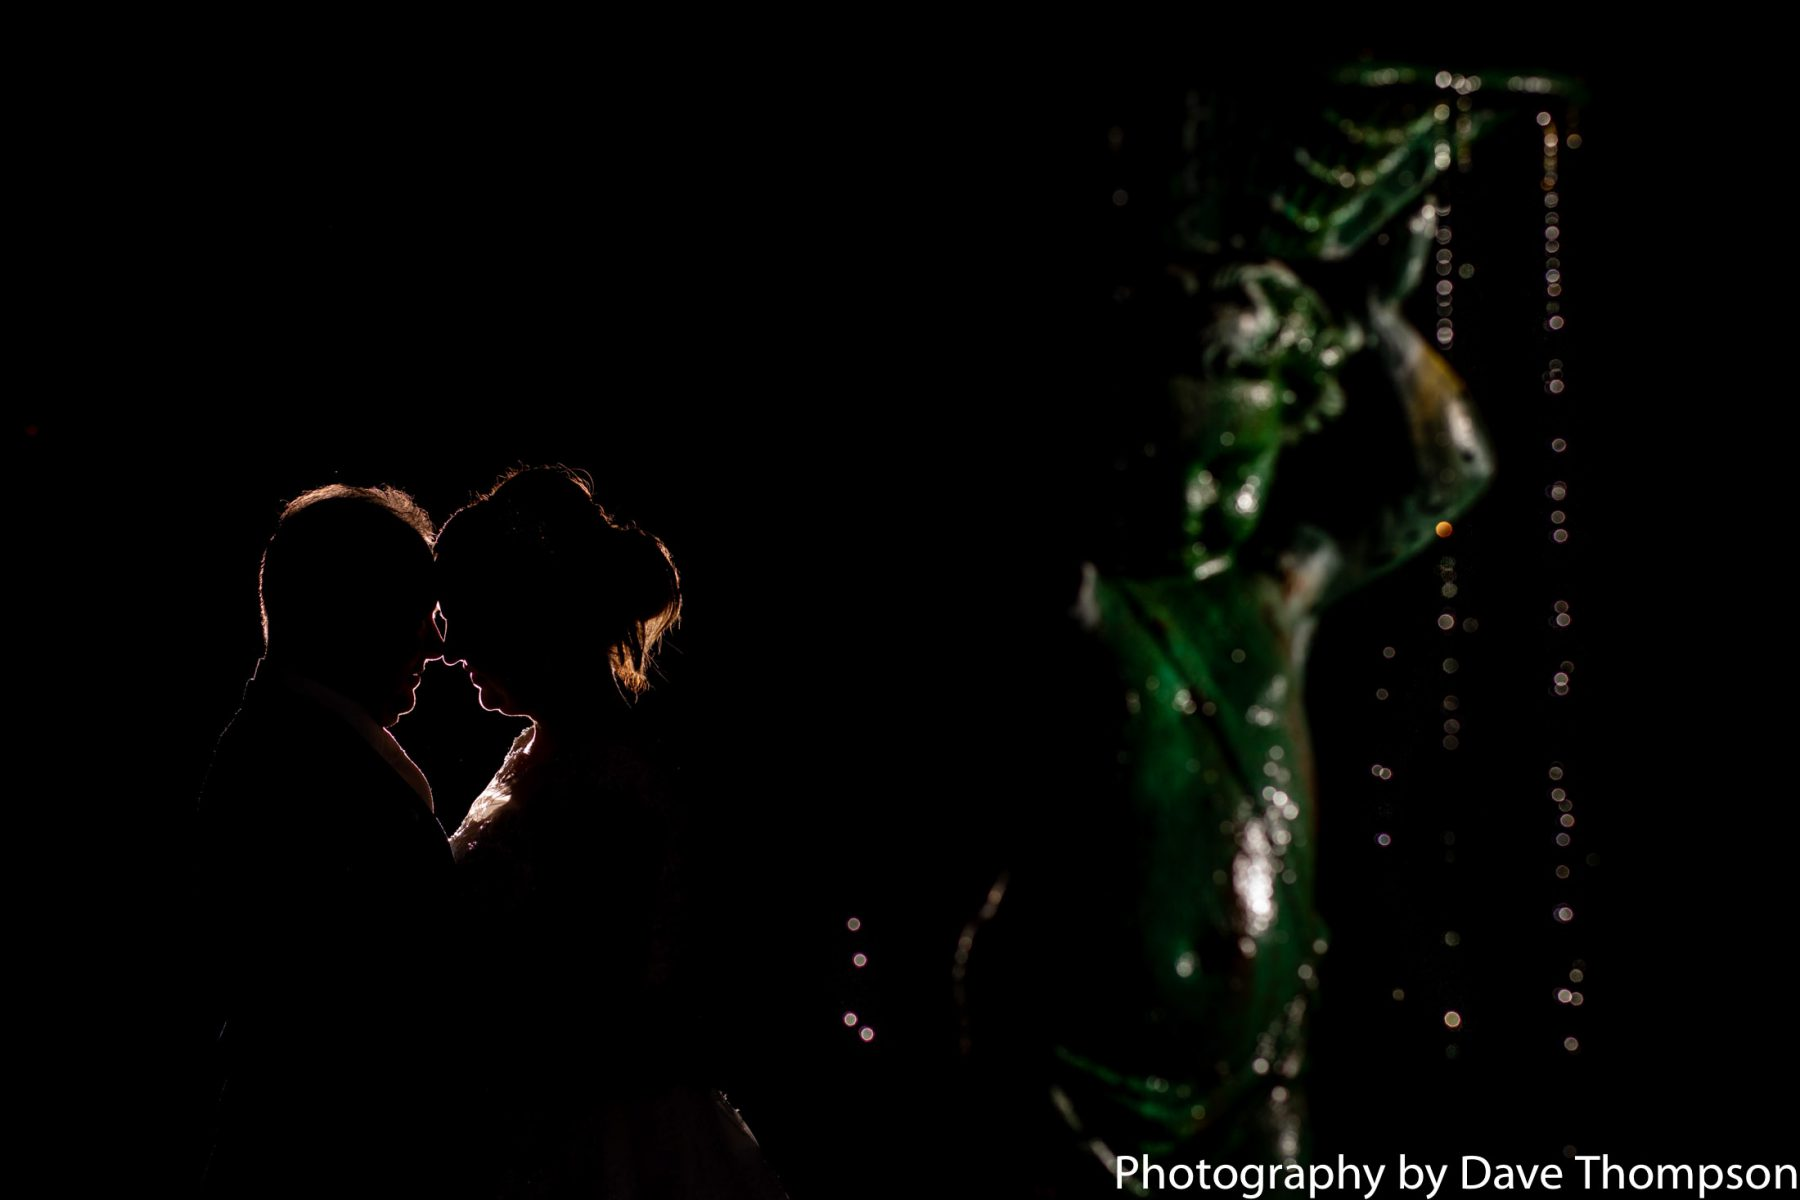 An evening wedding portrait using off camera flash outside the Mere Court Hotel